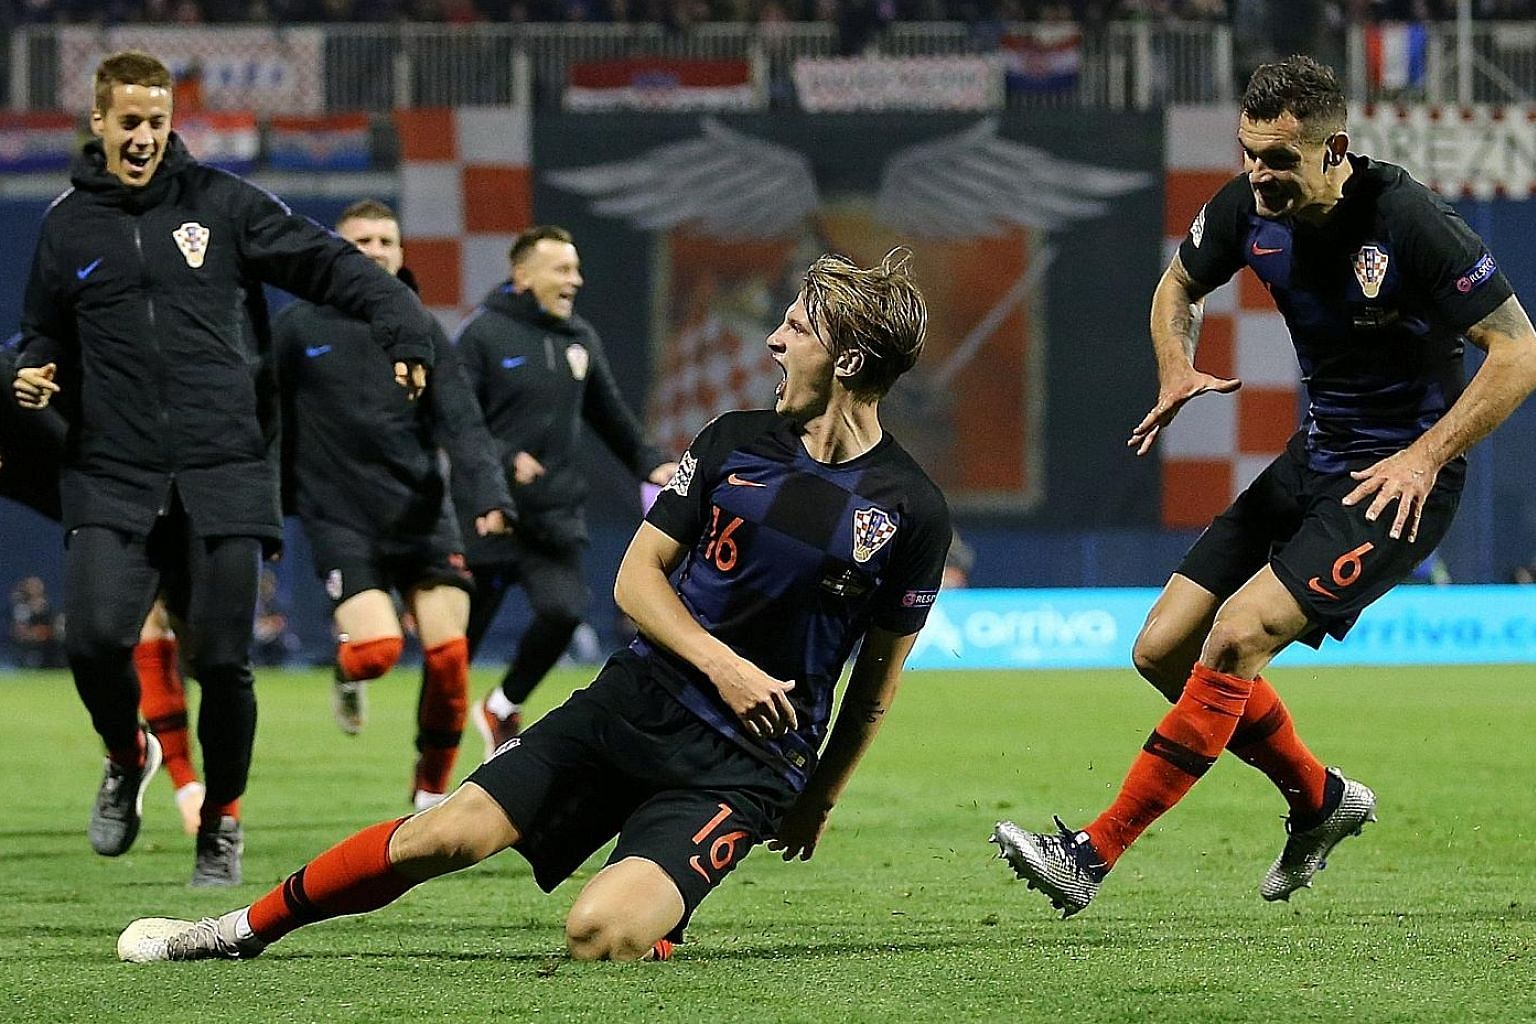 Tin Jedvaj is joined by teammates after scoring the winner in Croatia's 3-2 victory over Spain. Jedvaj's brace was his first international goals.